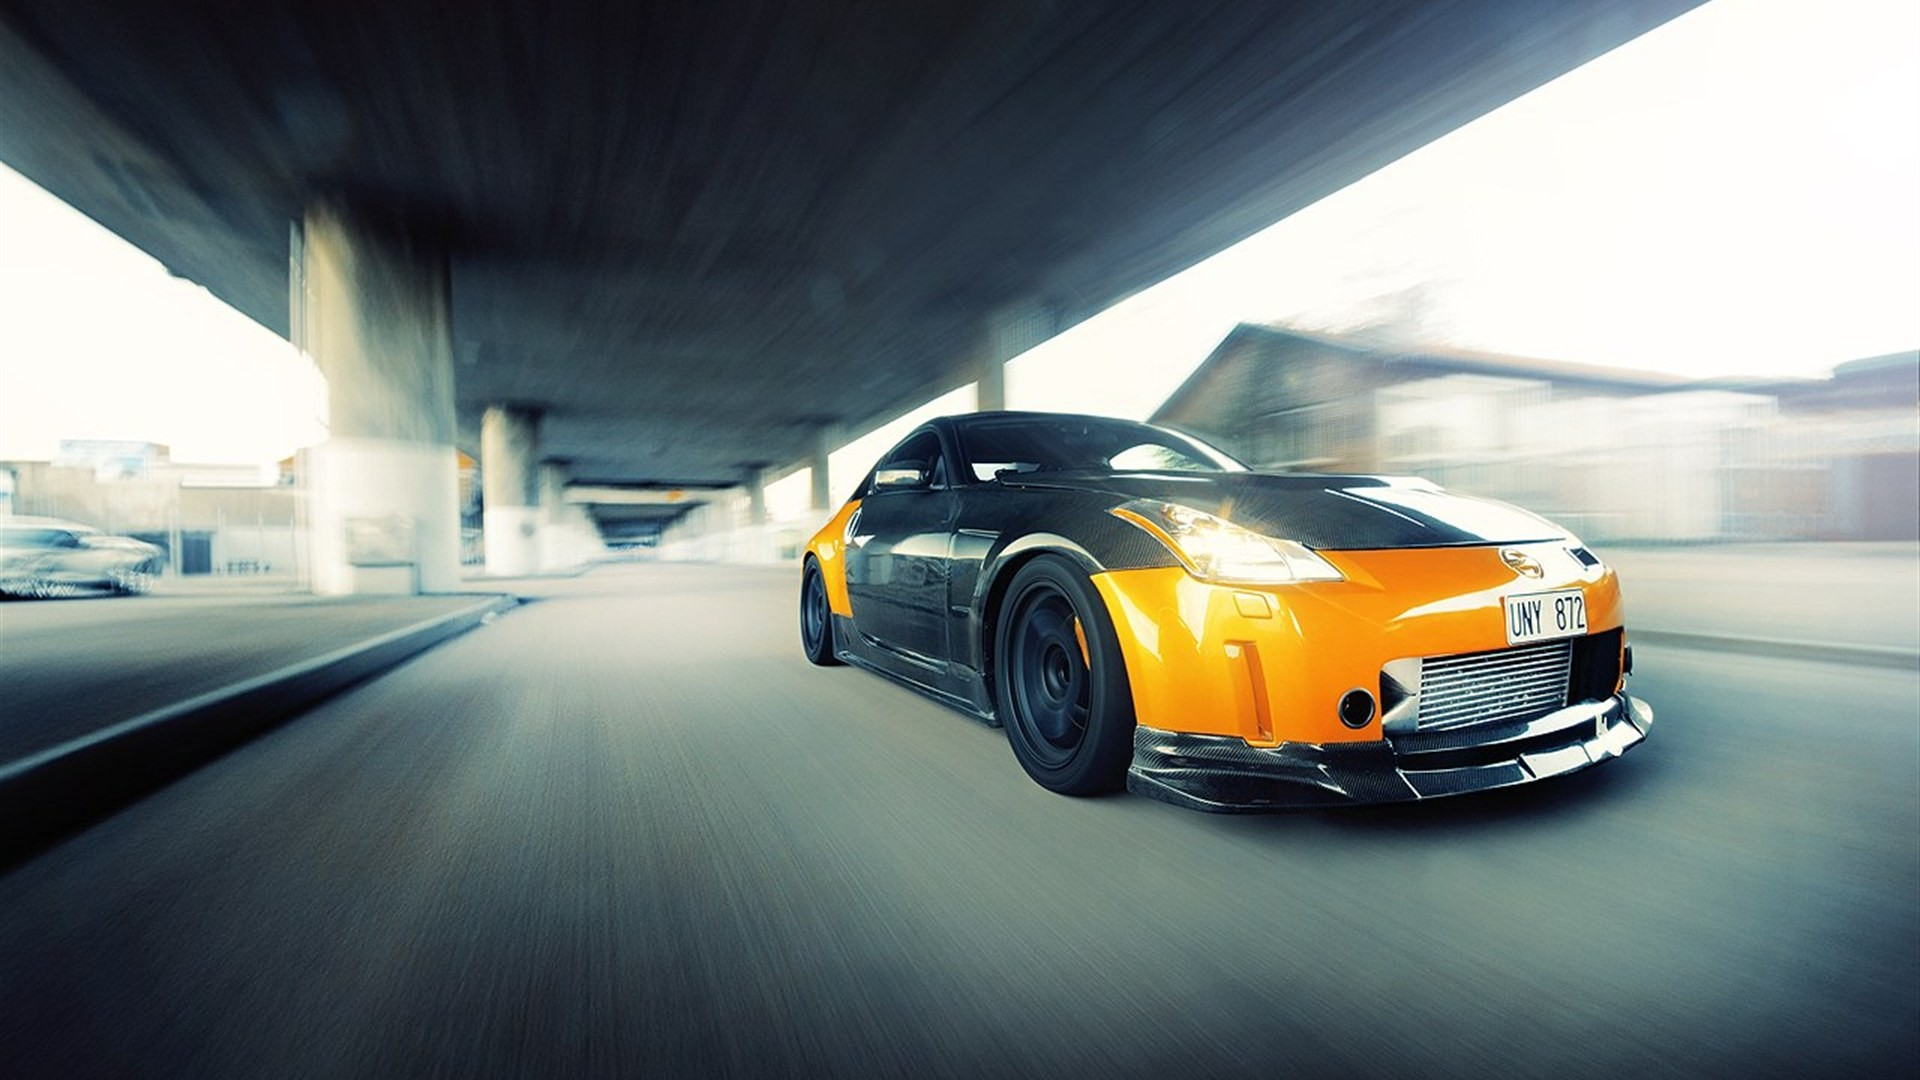 … nissan 350z, car, motion picture, road, speeding, auto wallpaper